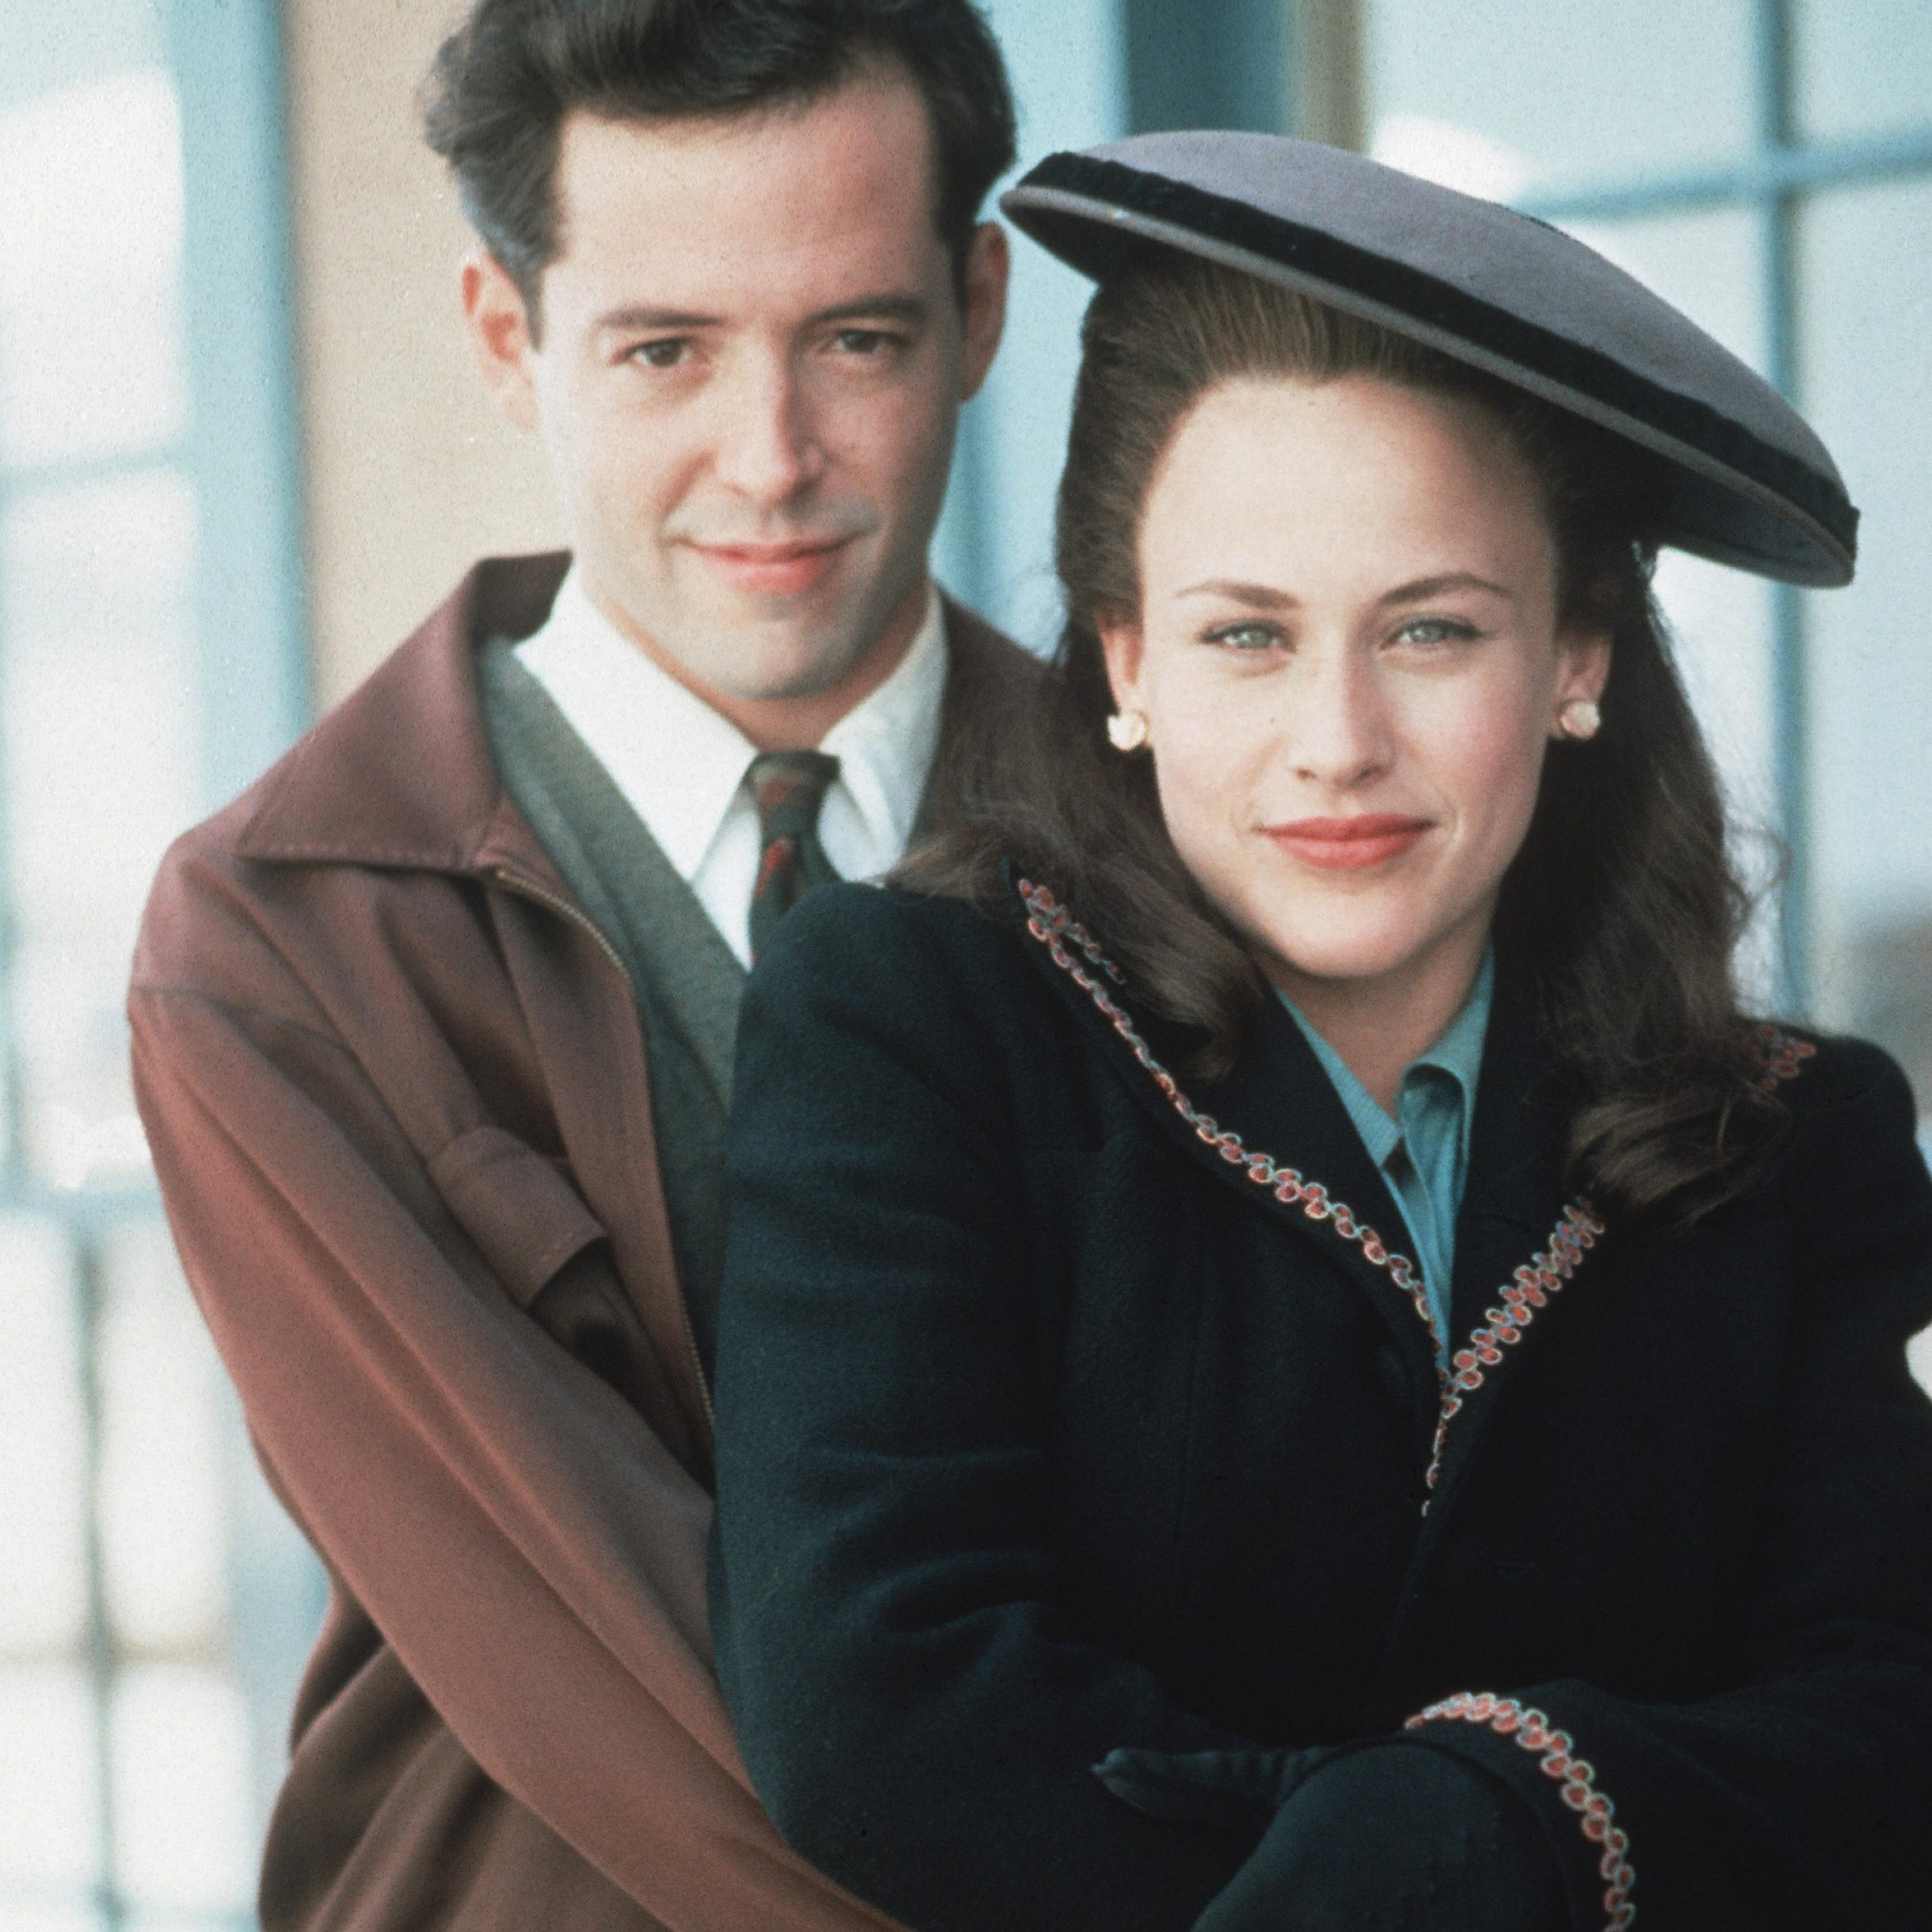 47724 infinity 1996 e1599656386310 20 Things You Probably Didn't Know About Matthew Broderick